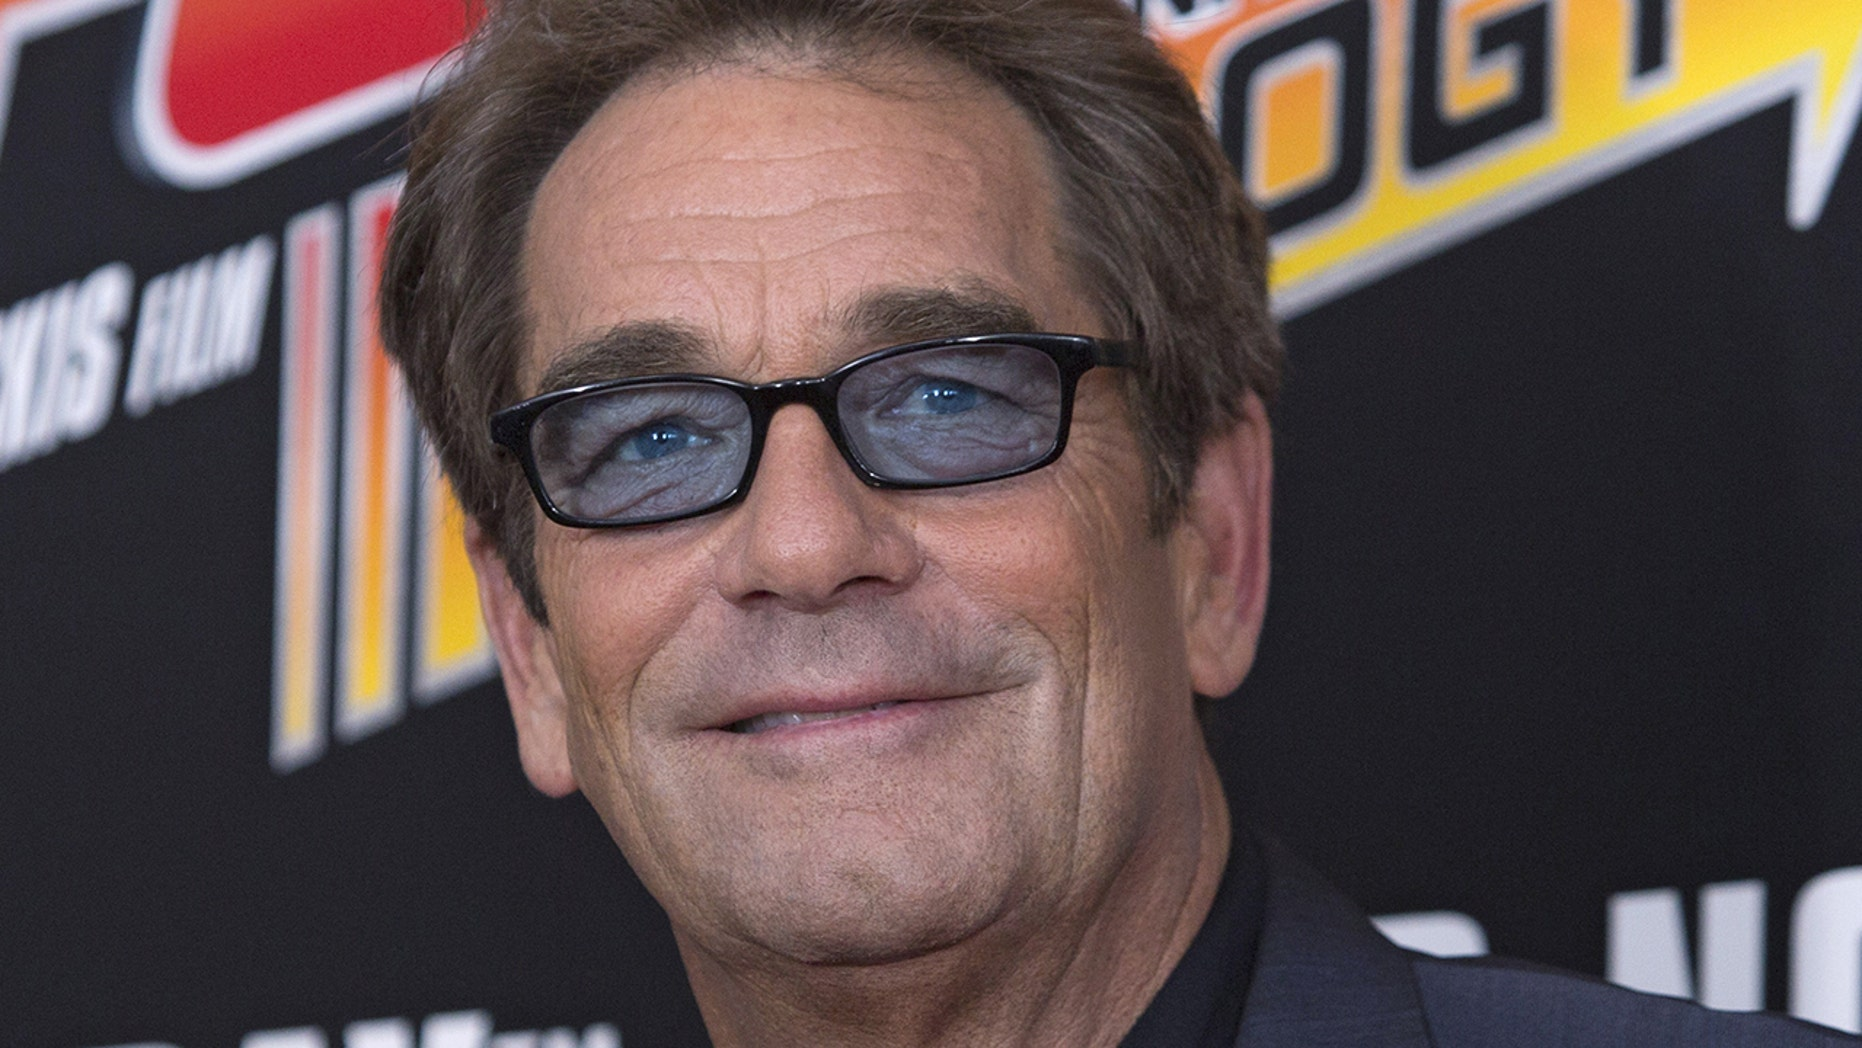 Musician Huey Lewis attends the Back to the Future 30th Anniversary screening in the Manhattan borough of New York, October 21, 2015.